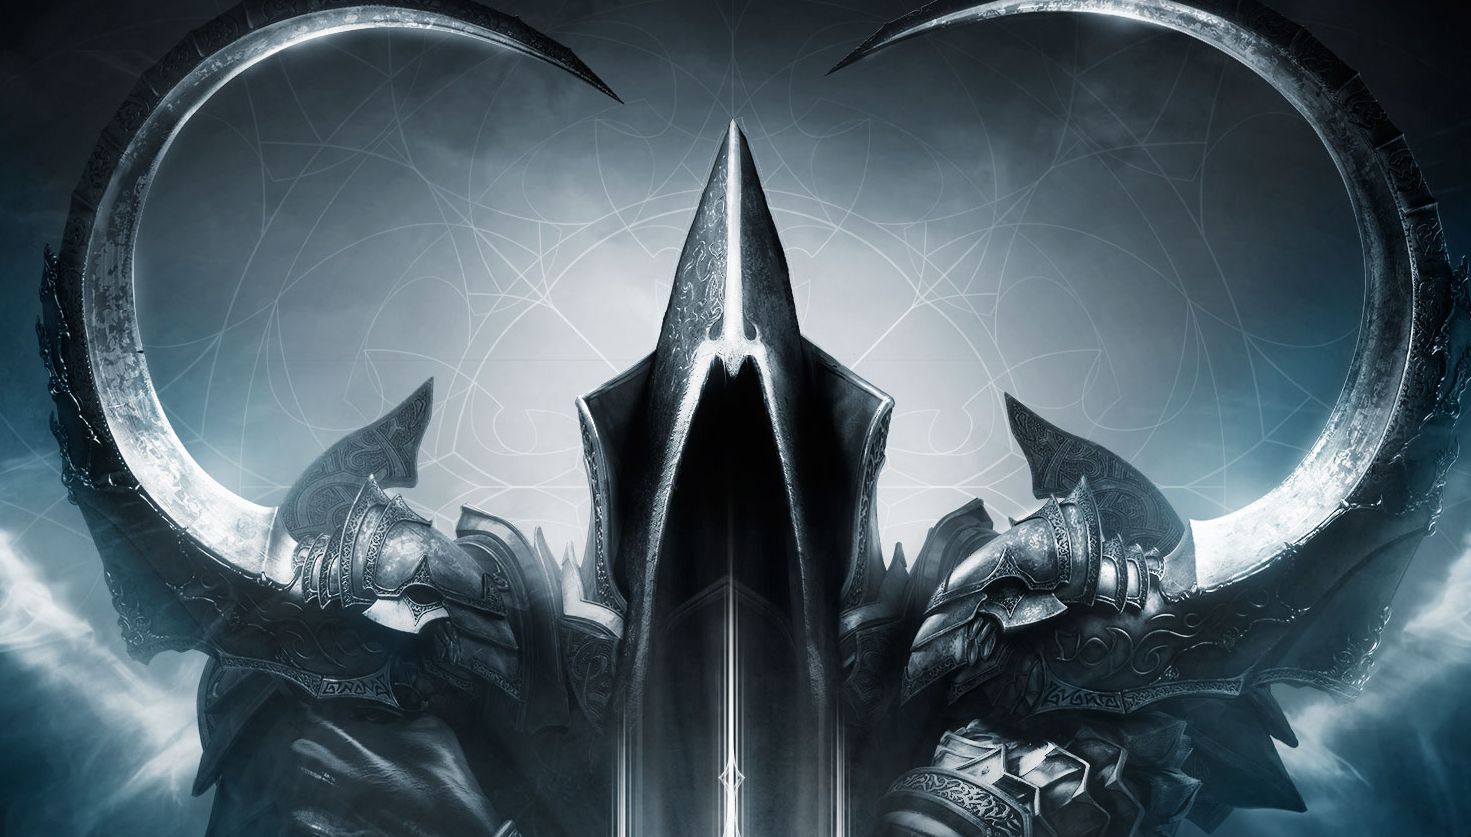 Diablo 3 Reaper of Souls Wallpaper - GeekShizzle